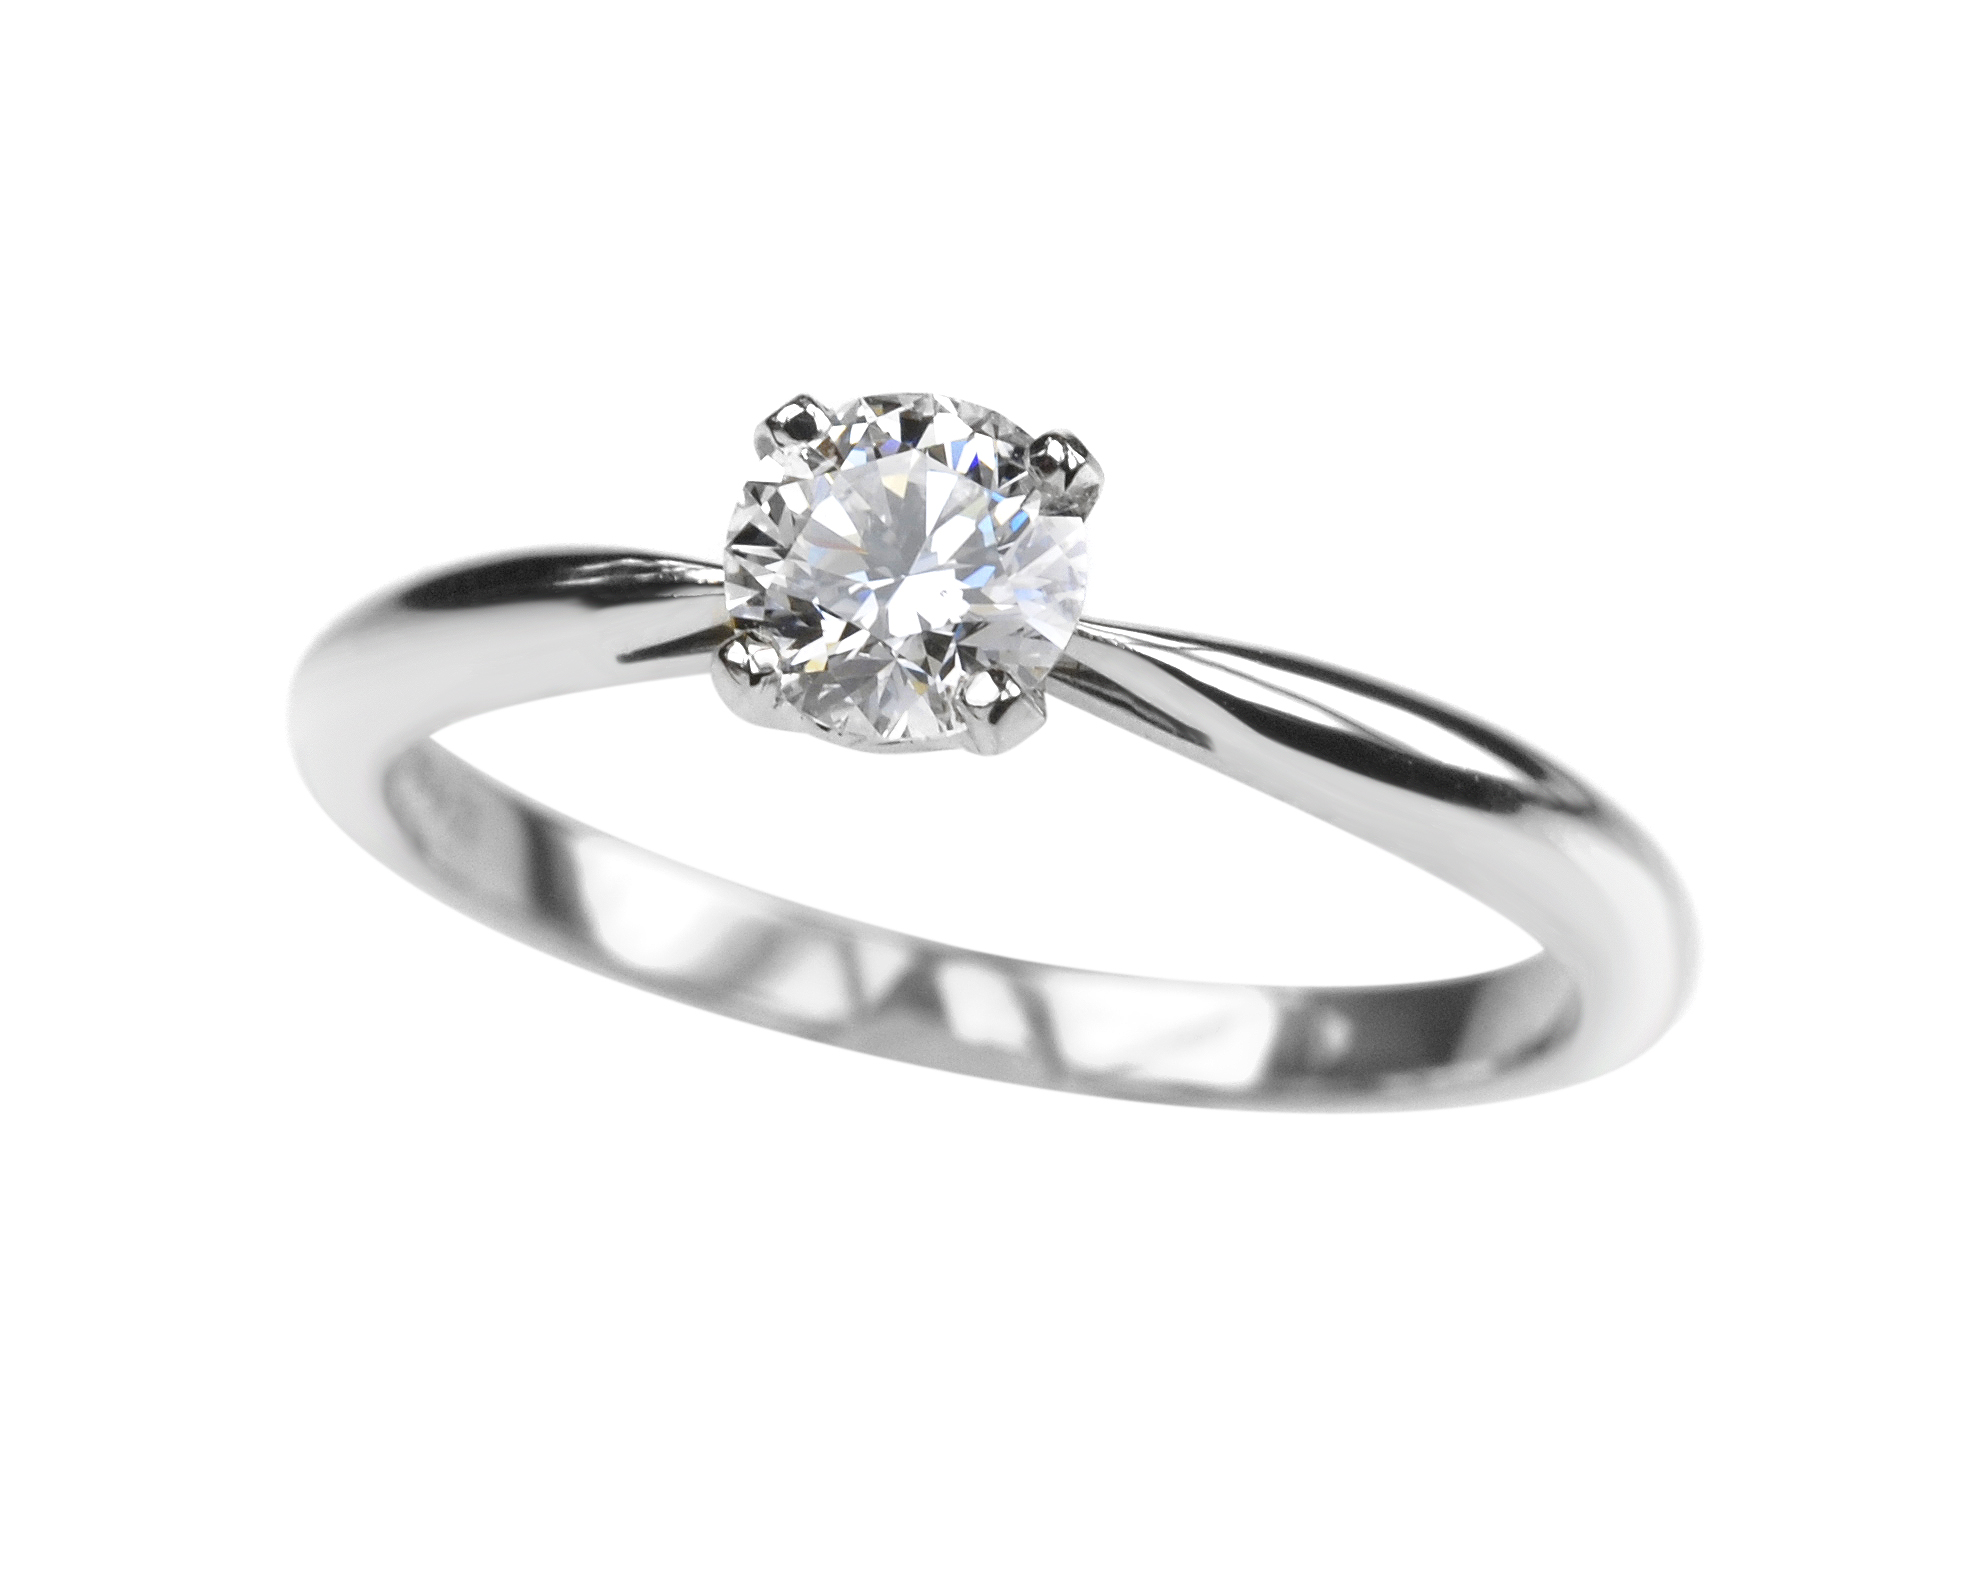 rings wholesale pav bands engagement jewellery online scottsdale carat wedding stunning sets ring